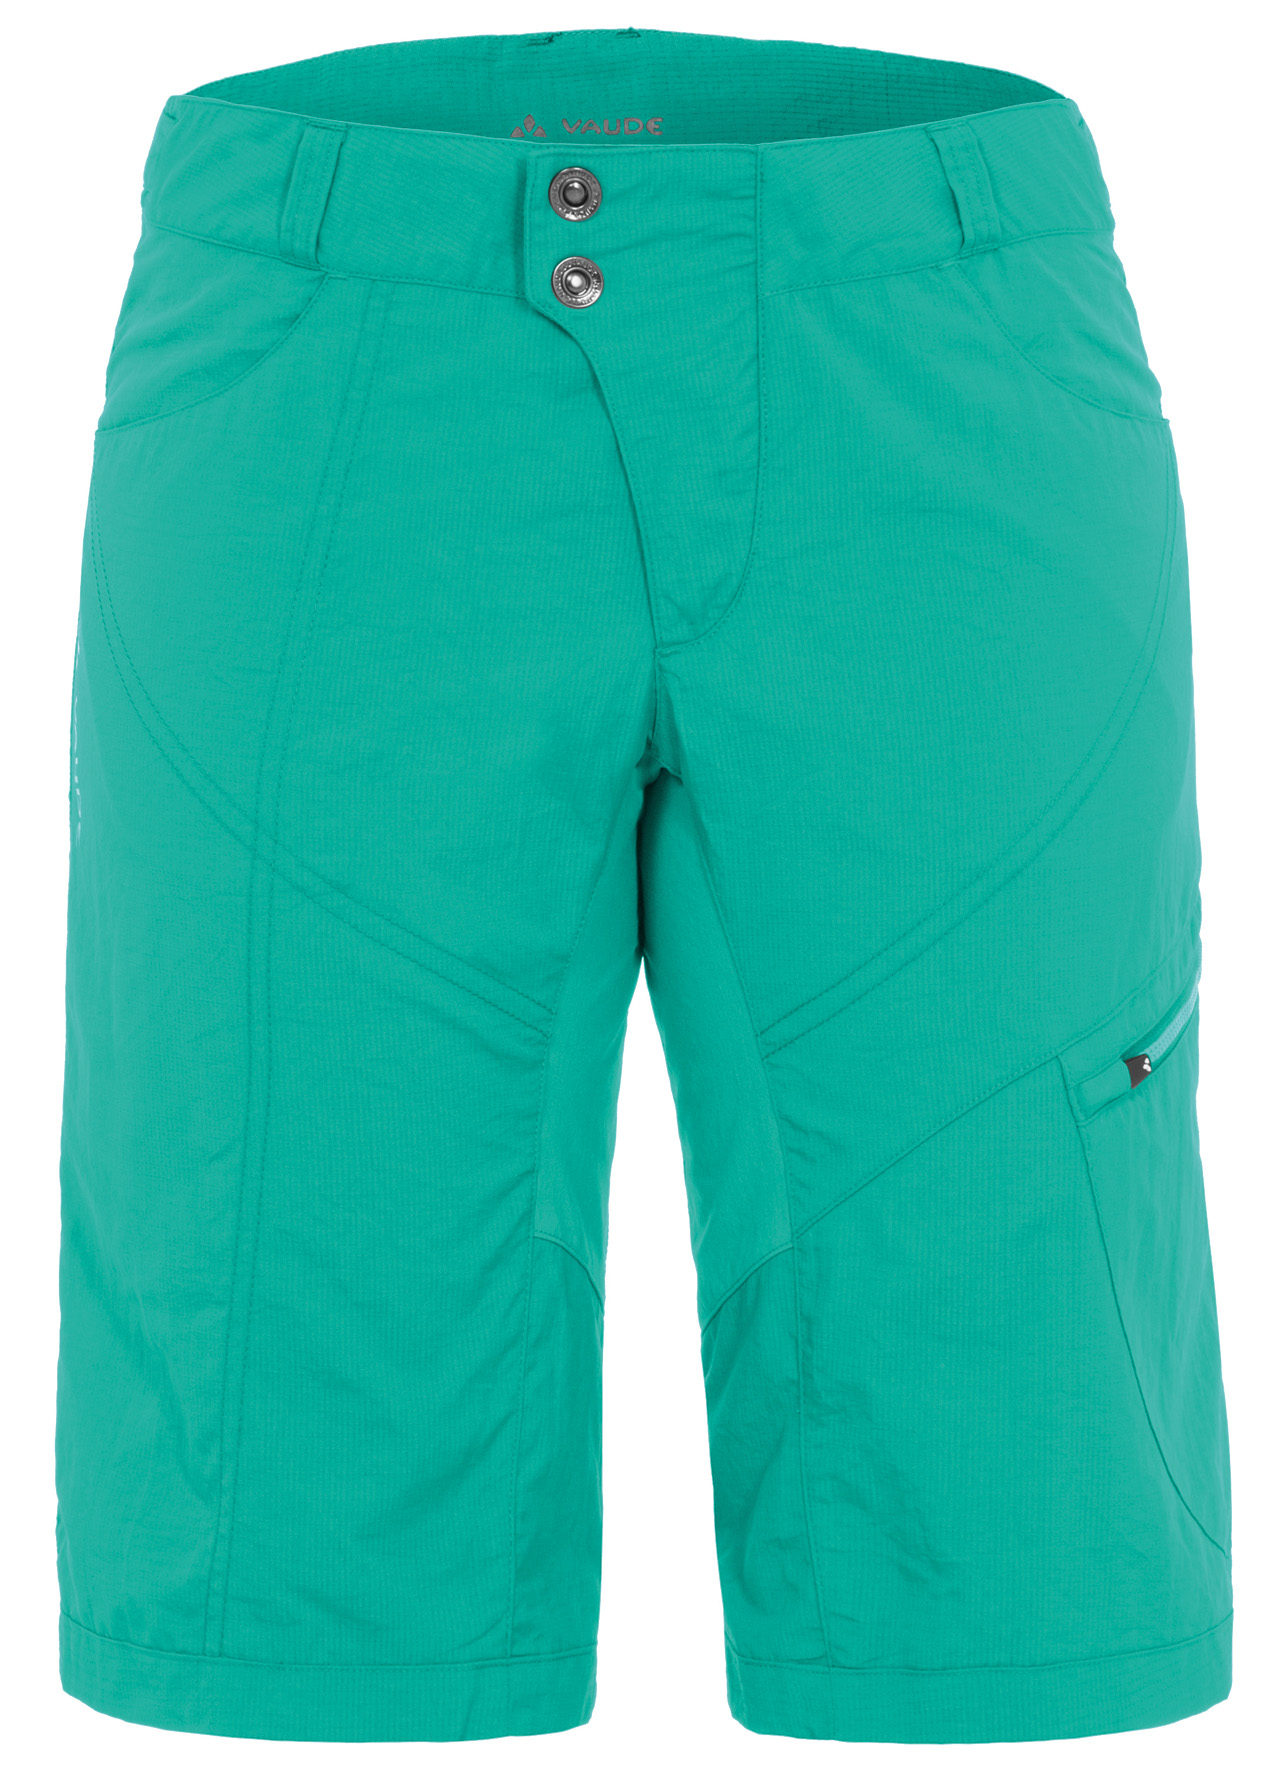 Women´s Tamaro Shorts lotus green Größe 40 - schneider-sports